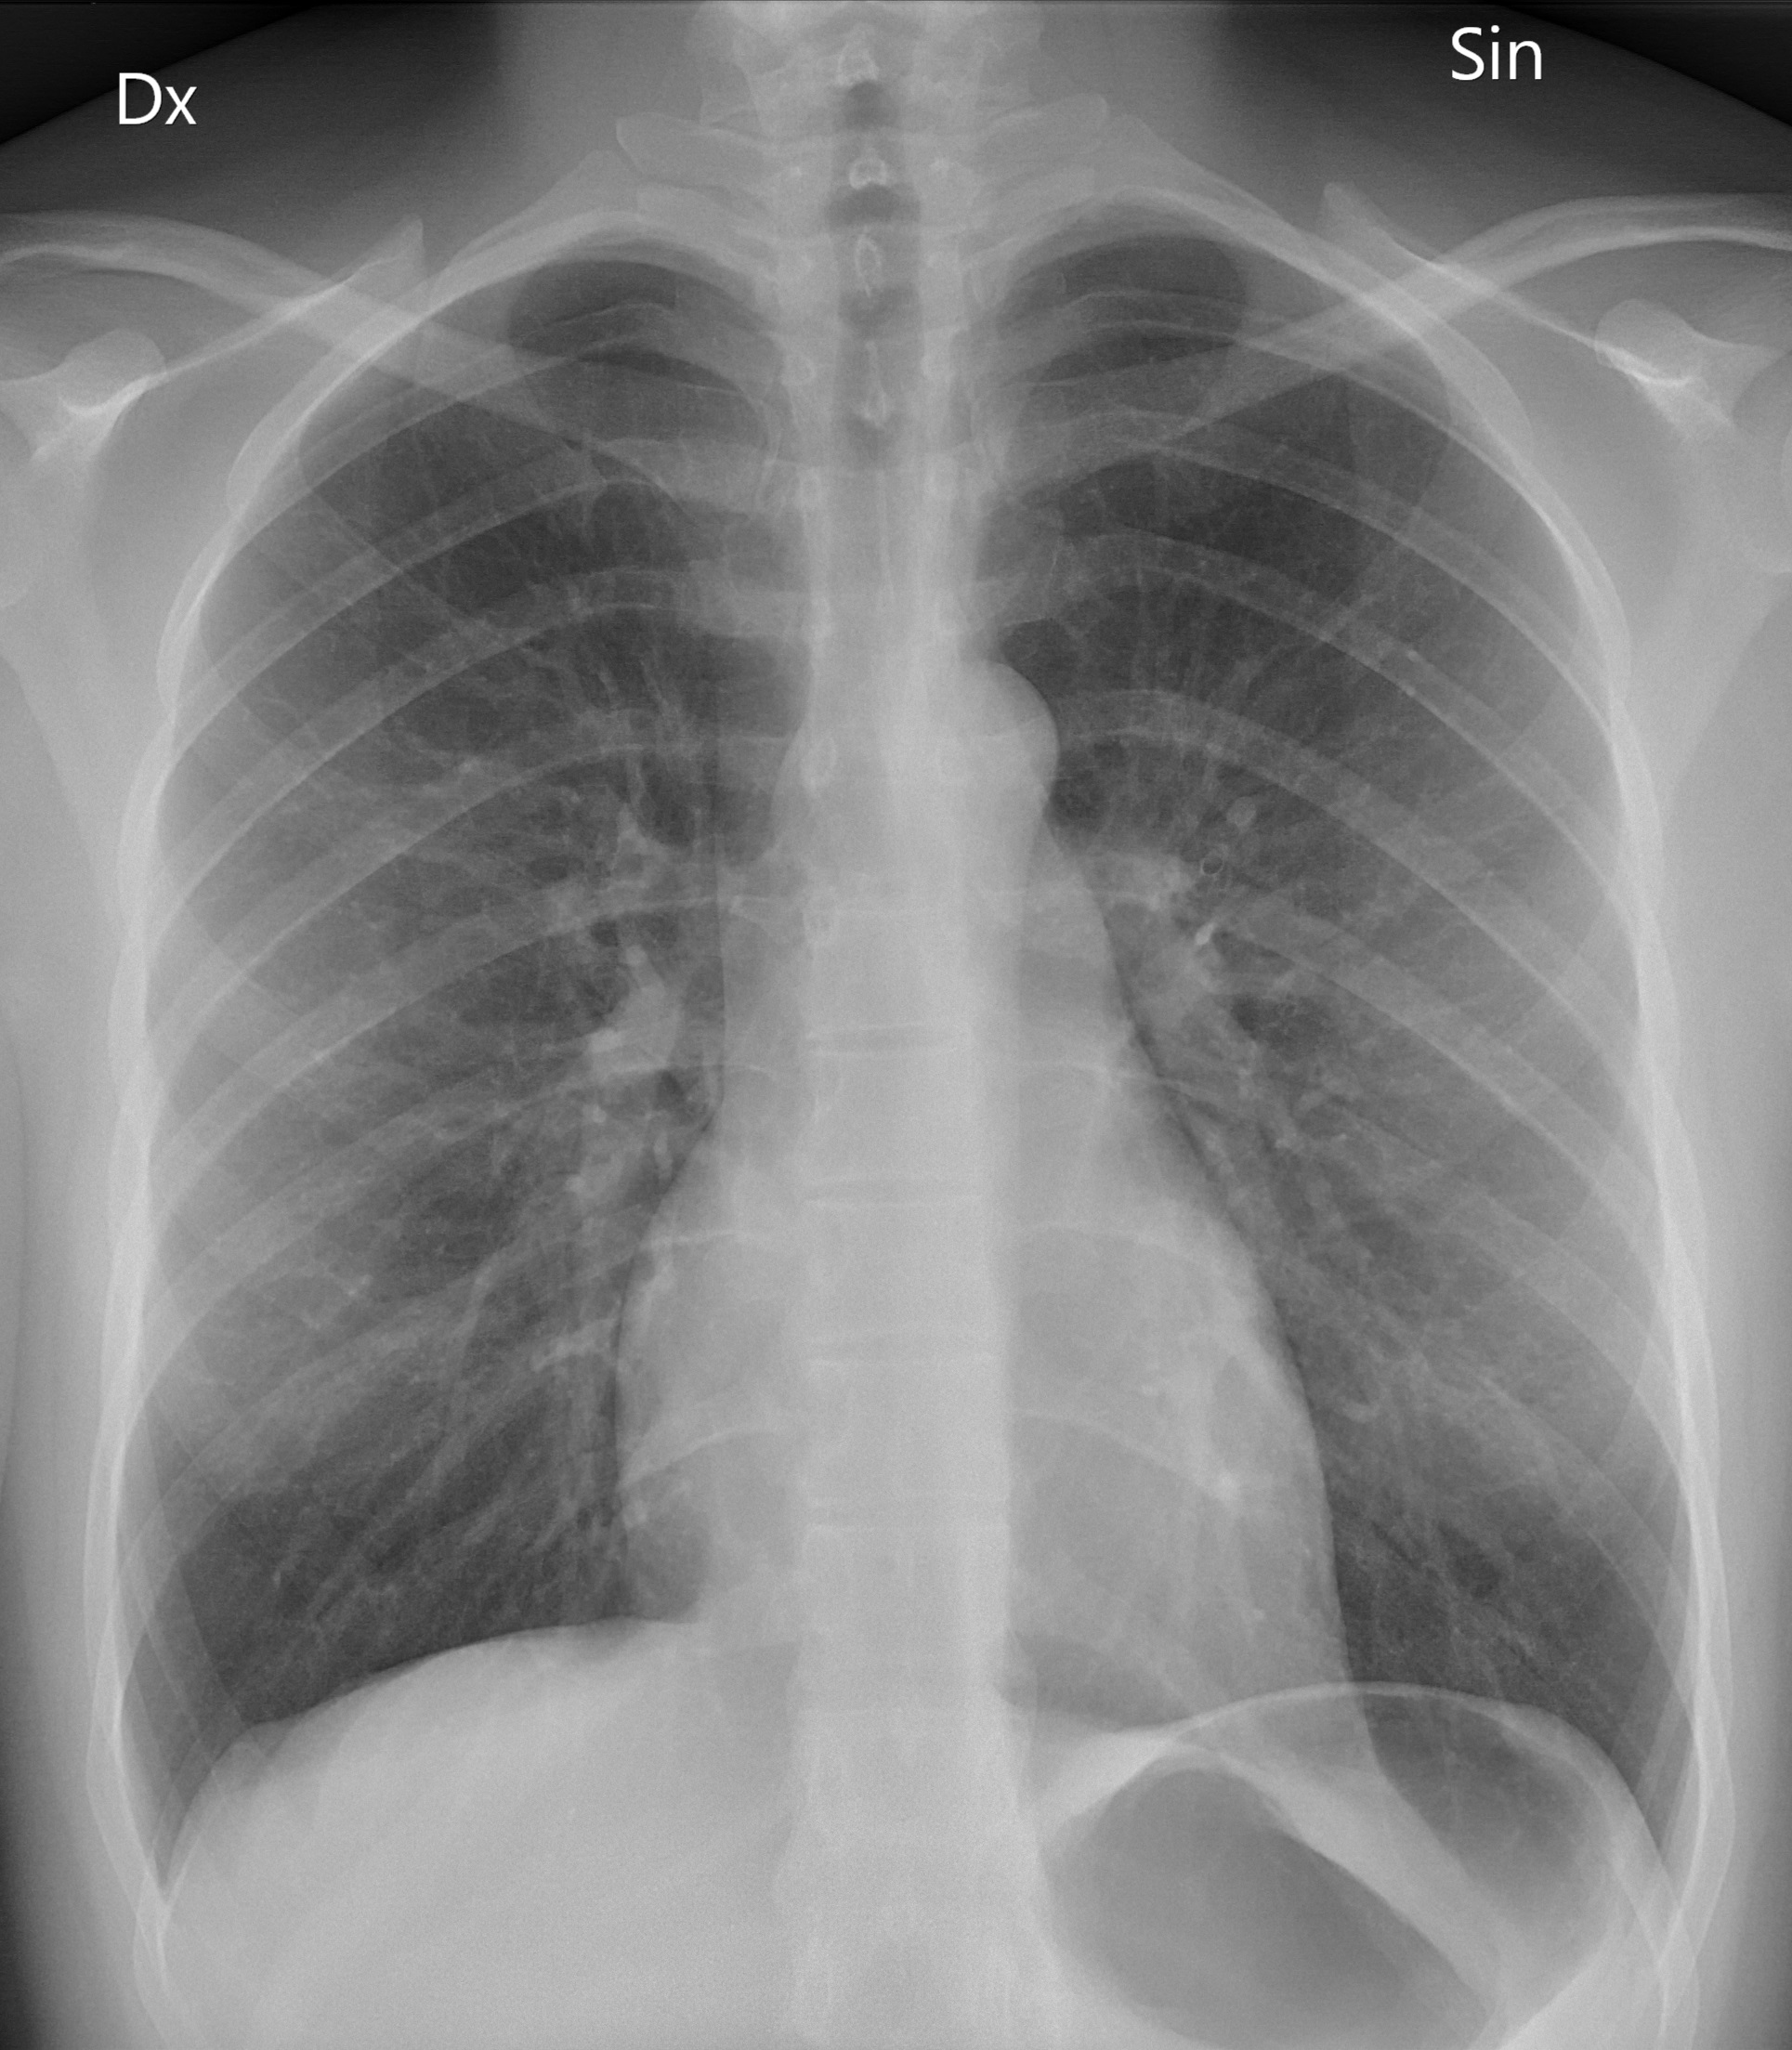 Normal Chest Xray 4